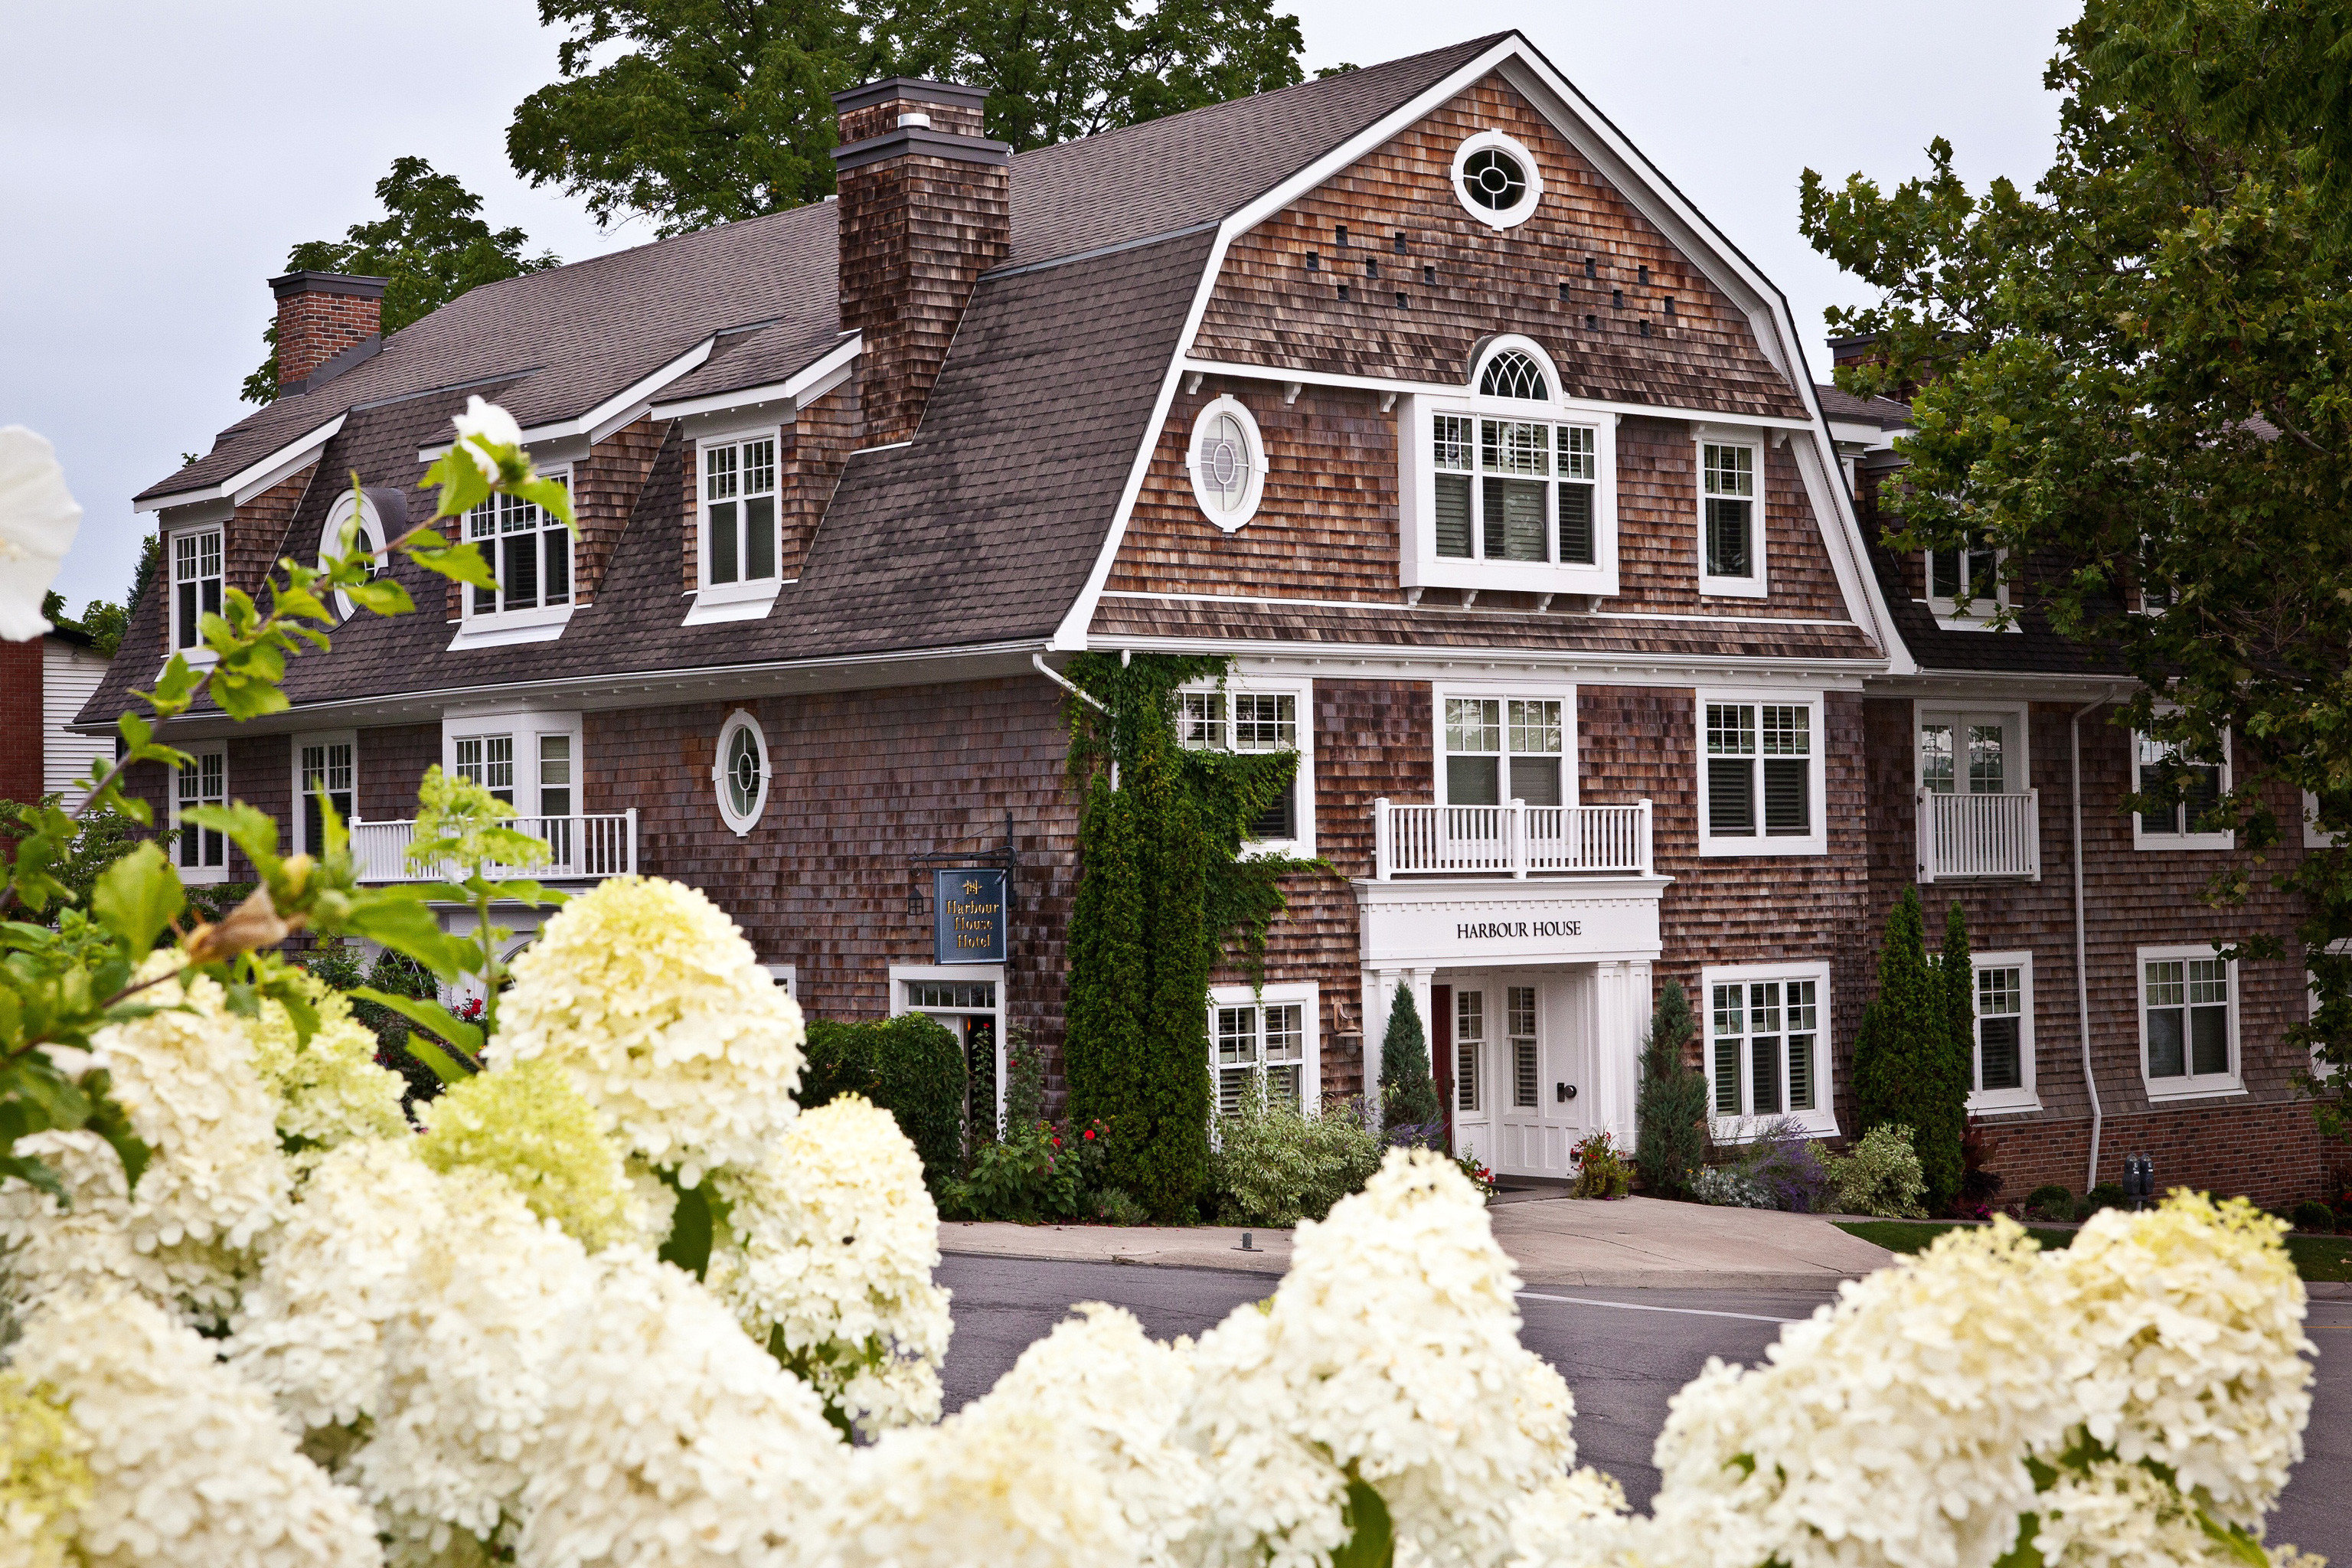 Buildings Exterior Hotels Luxury Romance Romantic Rustic Scenic views building tree house flower home mansion cottage residential area Garden manor house farmhouse